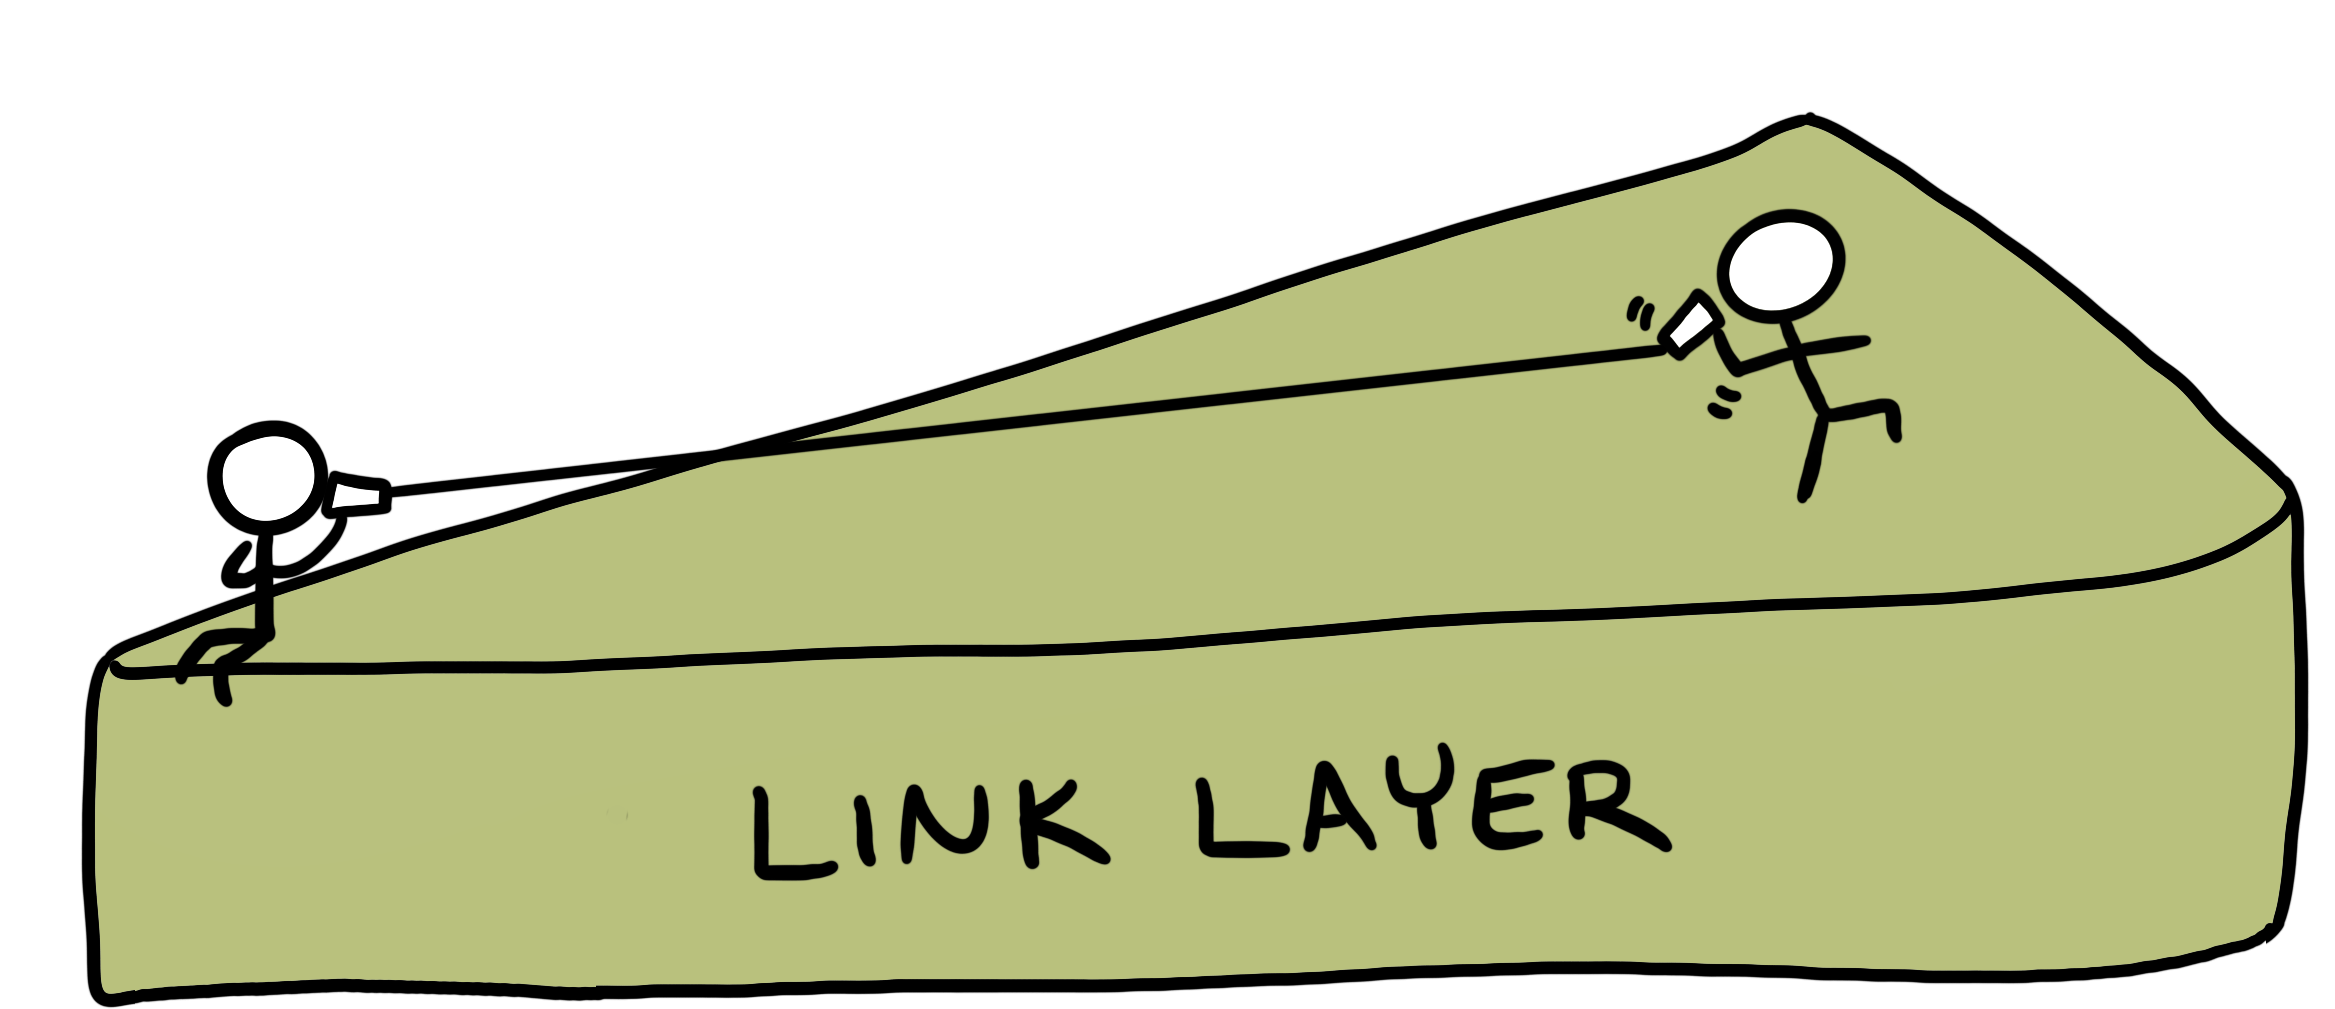 Link cake layer cartoon